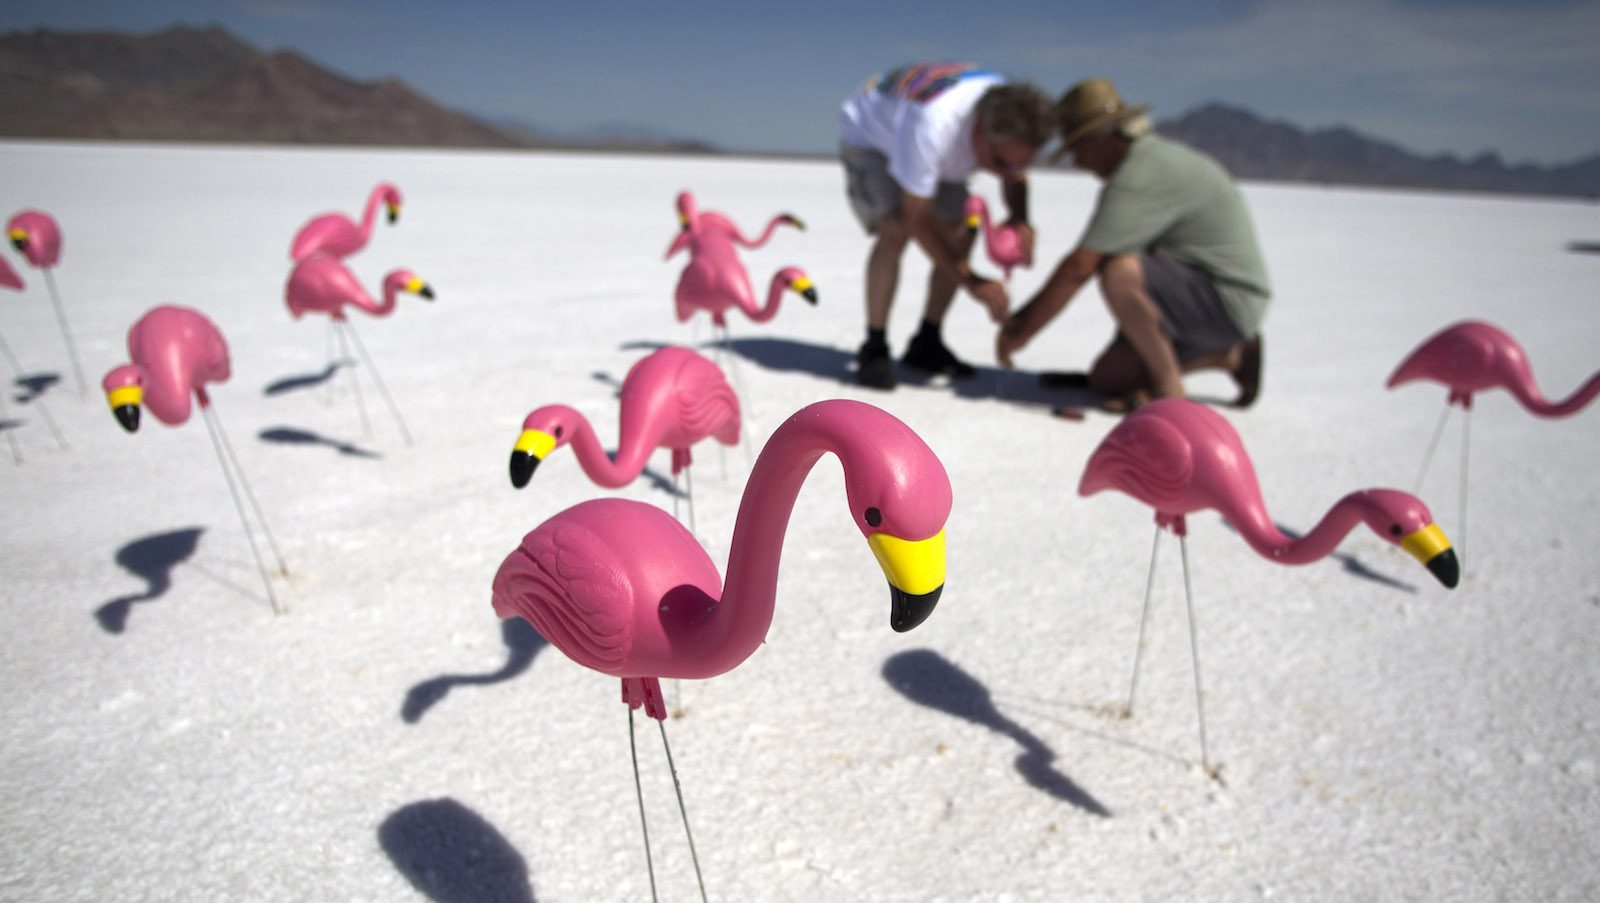 Race fans place plastic pink flamingos in the salt near their viewing area during the third day of the 63rd annual Bonneville SpeedWeek race in Utah